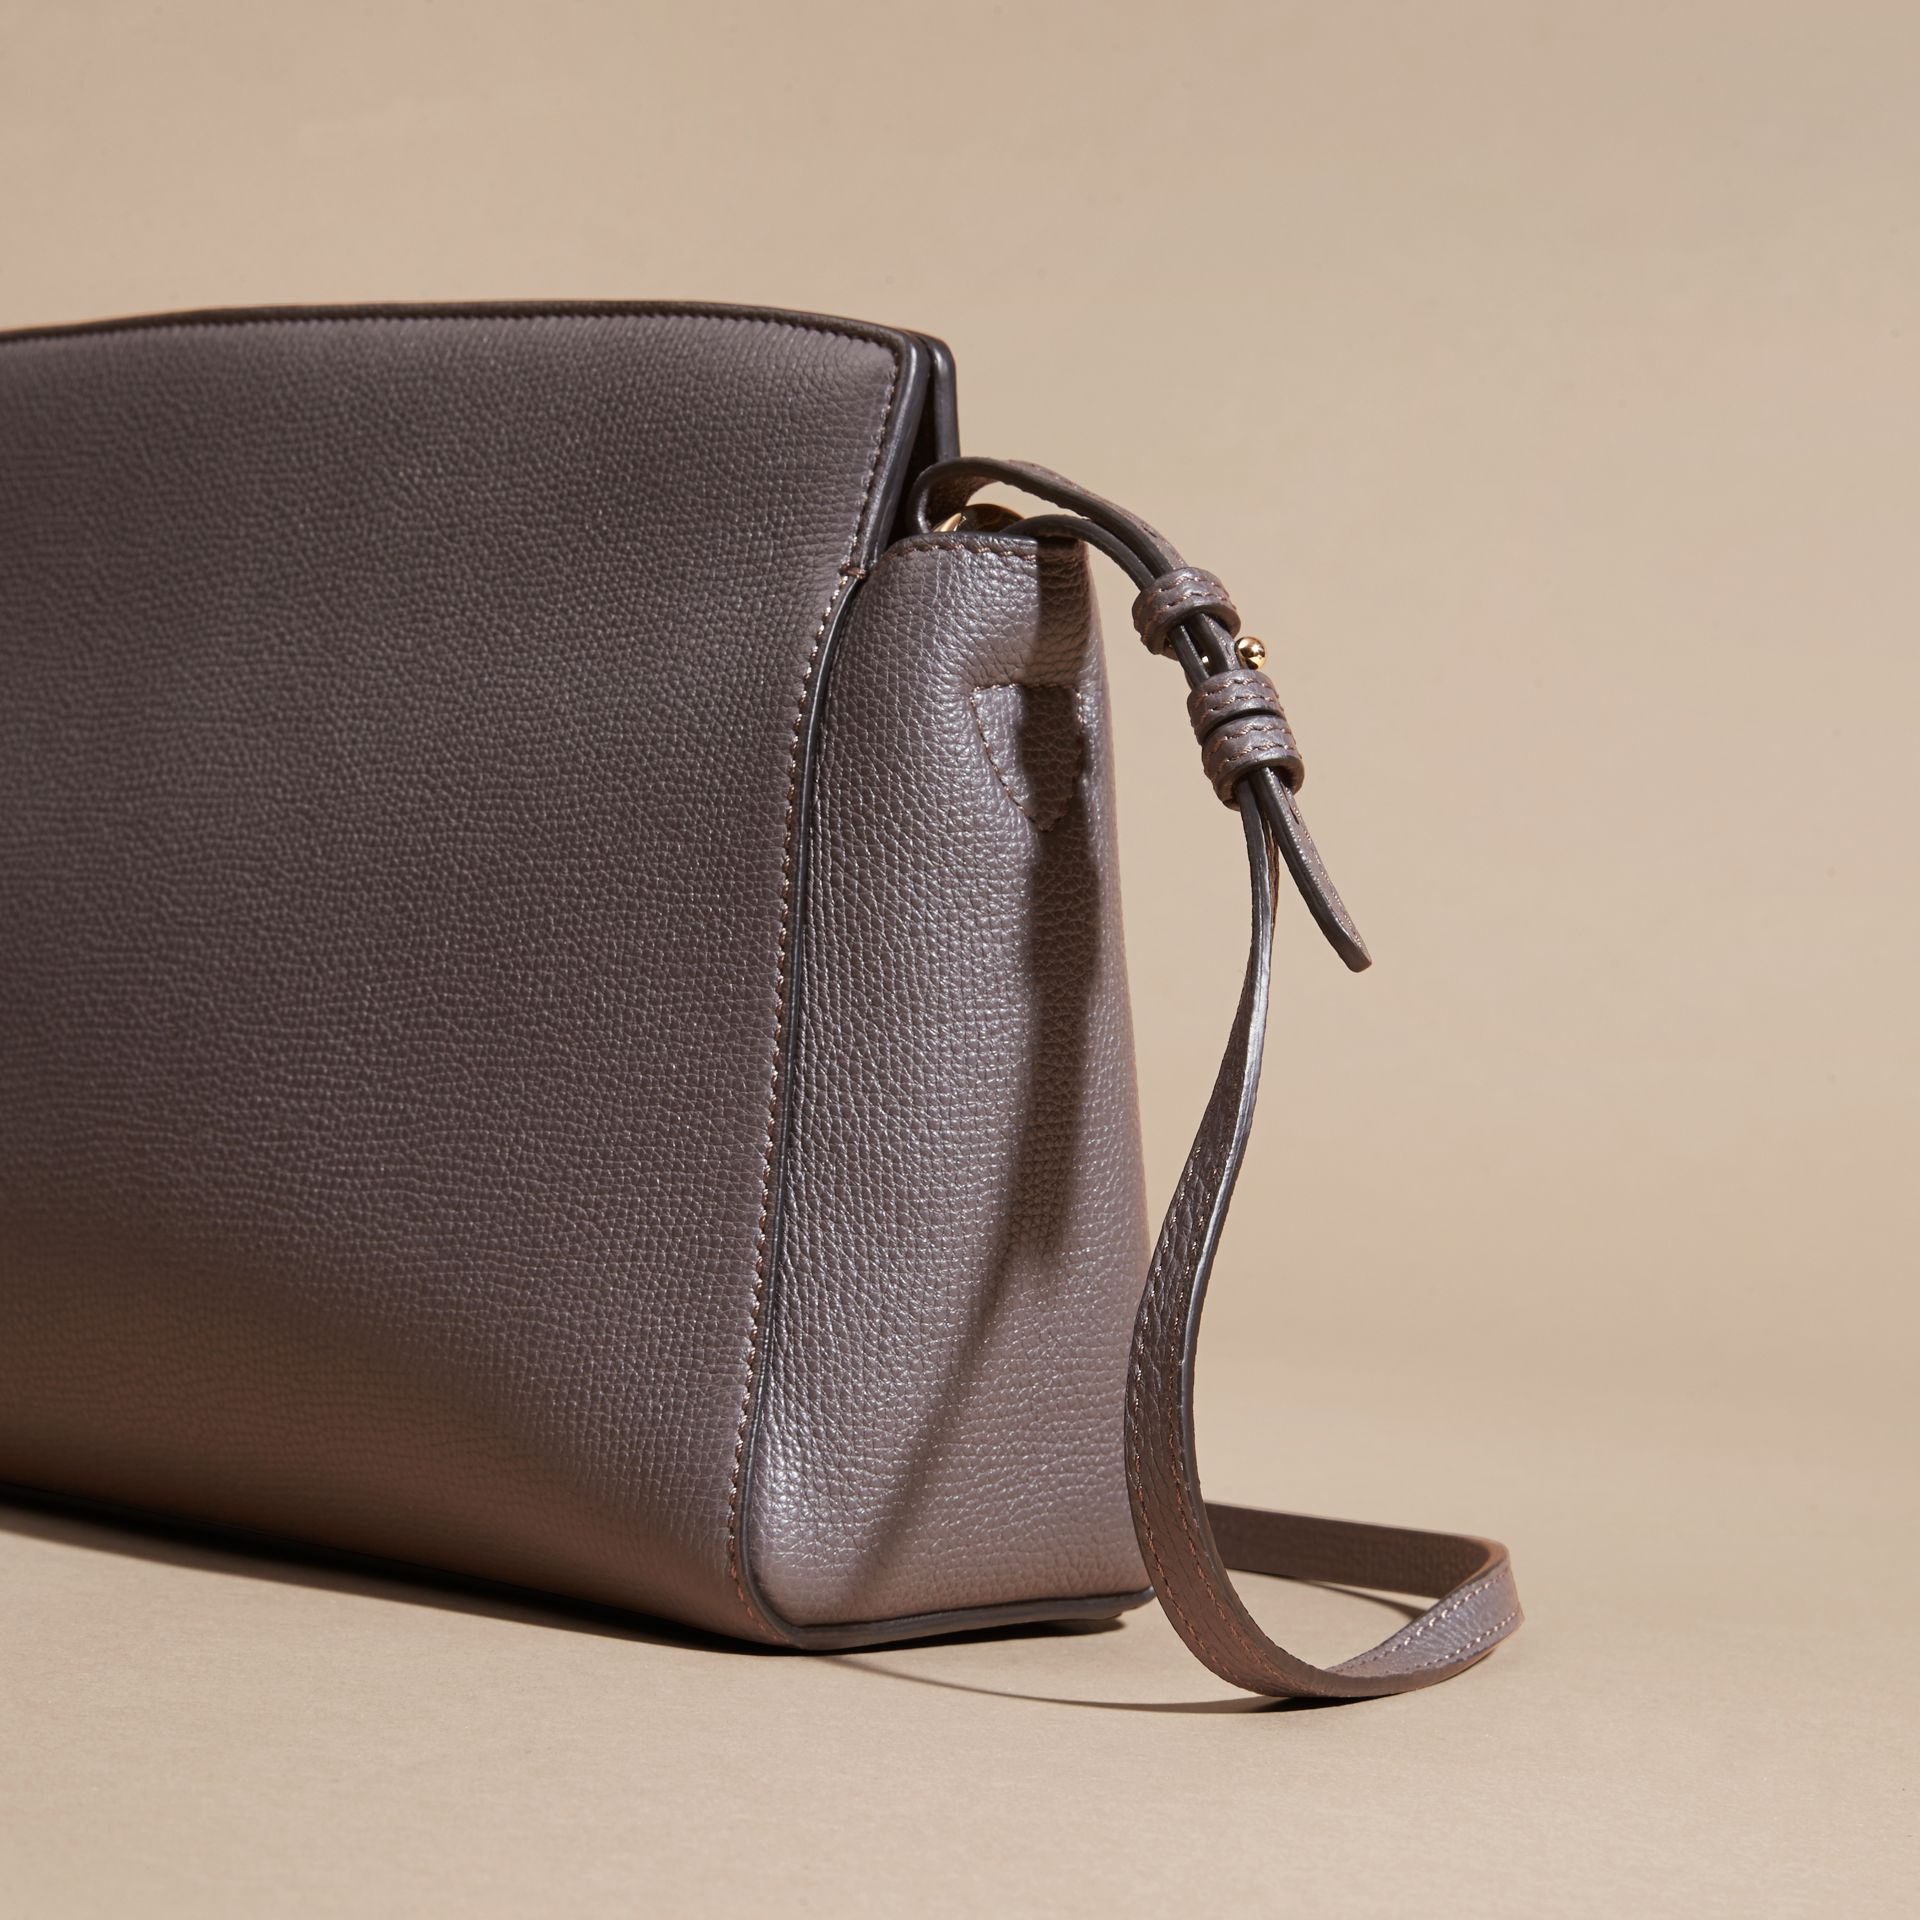 Sepia grey The Saddle Clutch in Grainy Bonded Leather Sepia Grey - gallery image 4